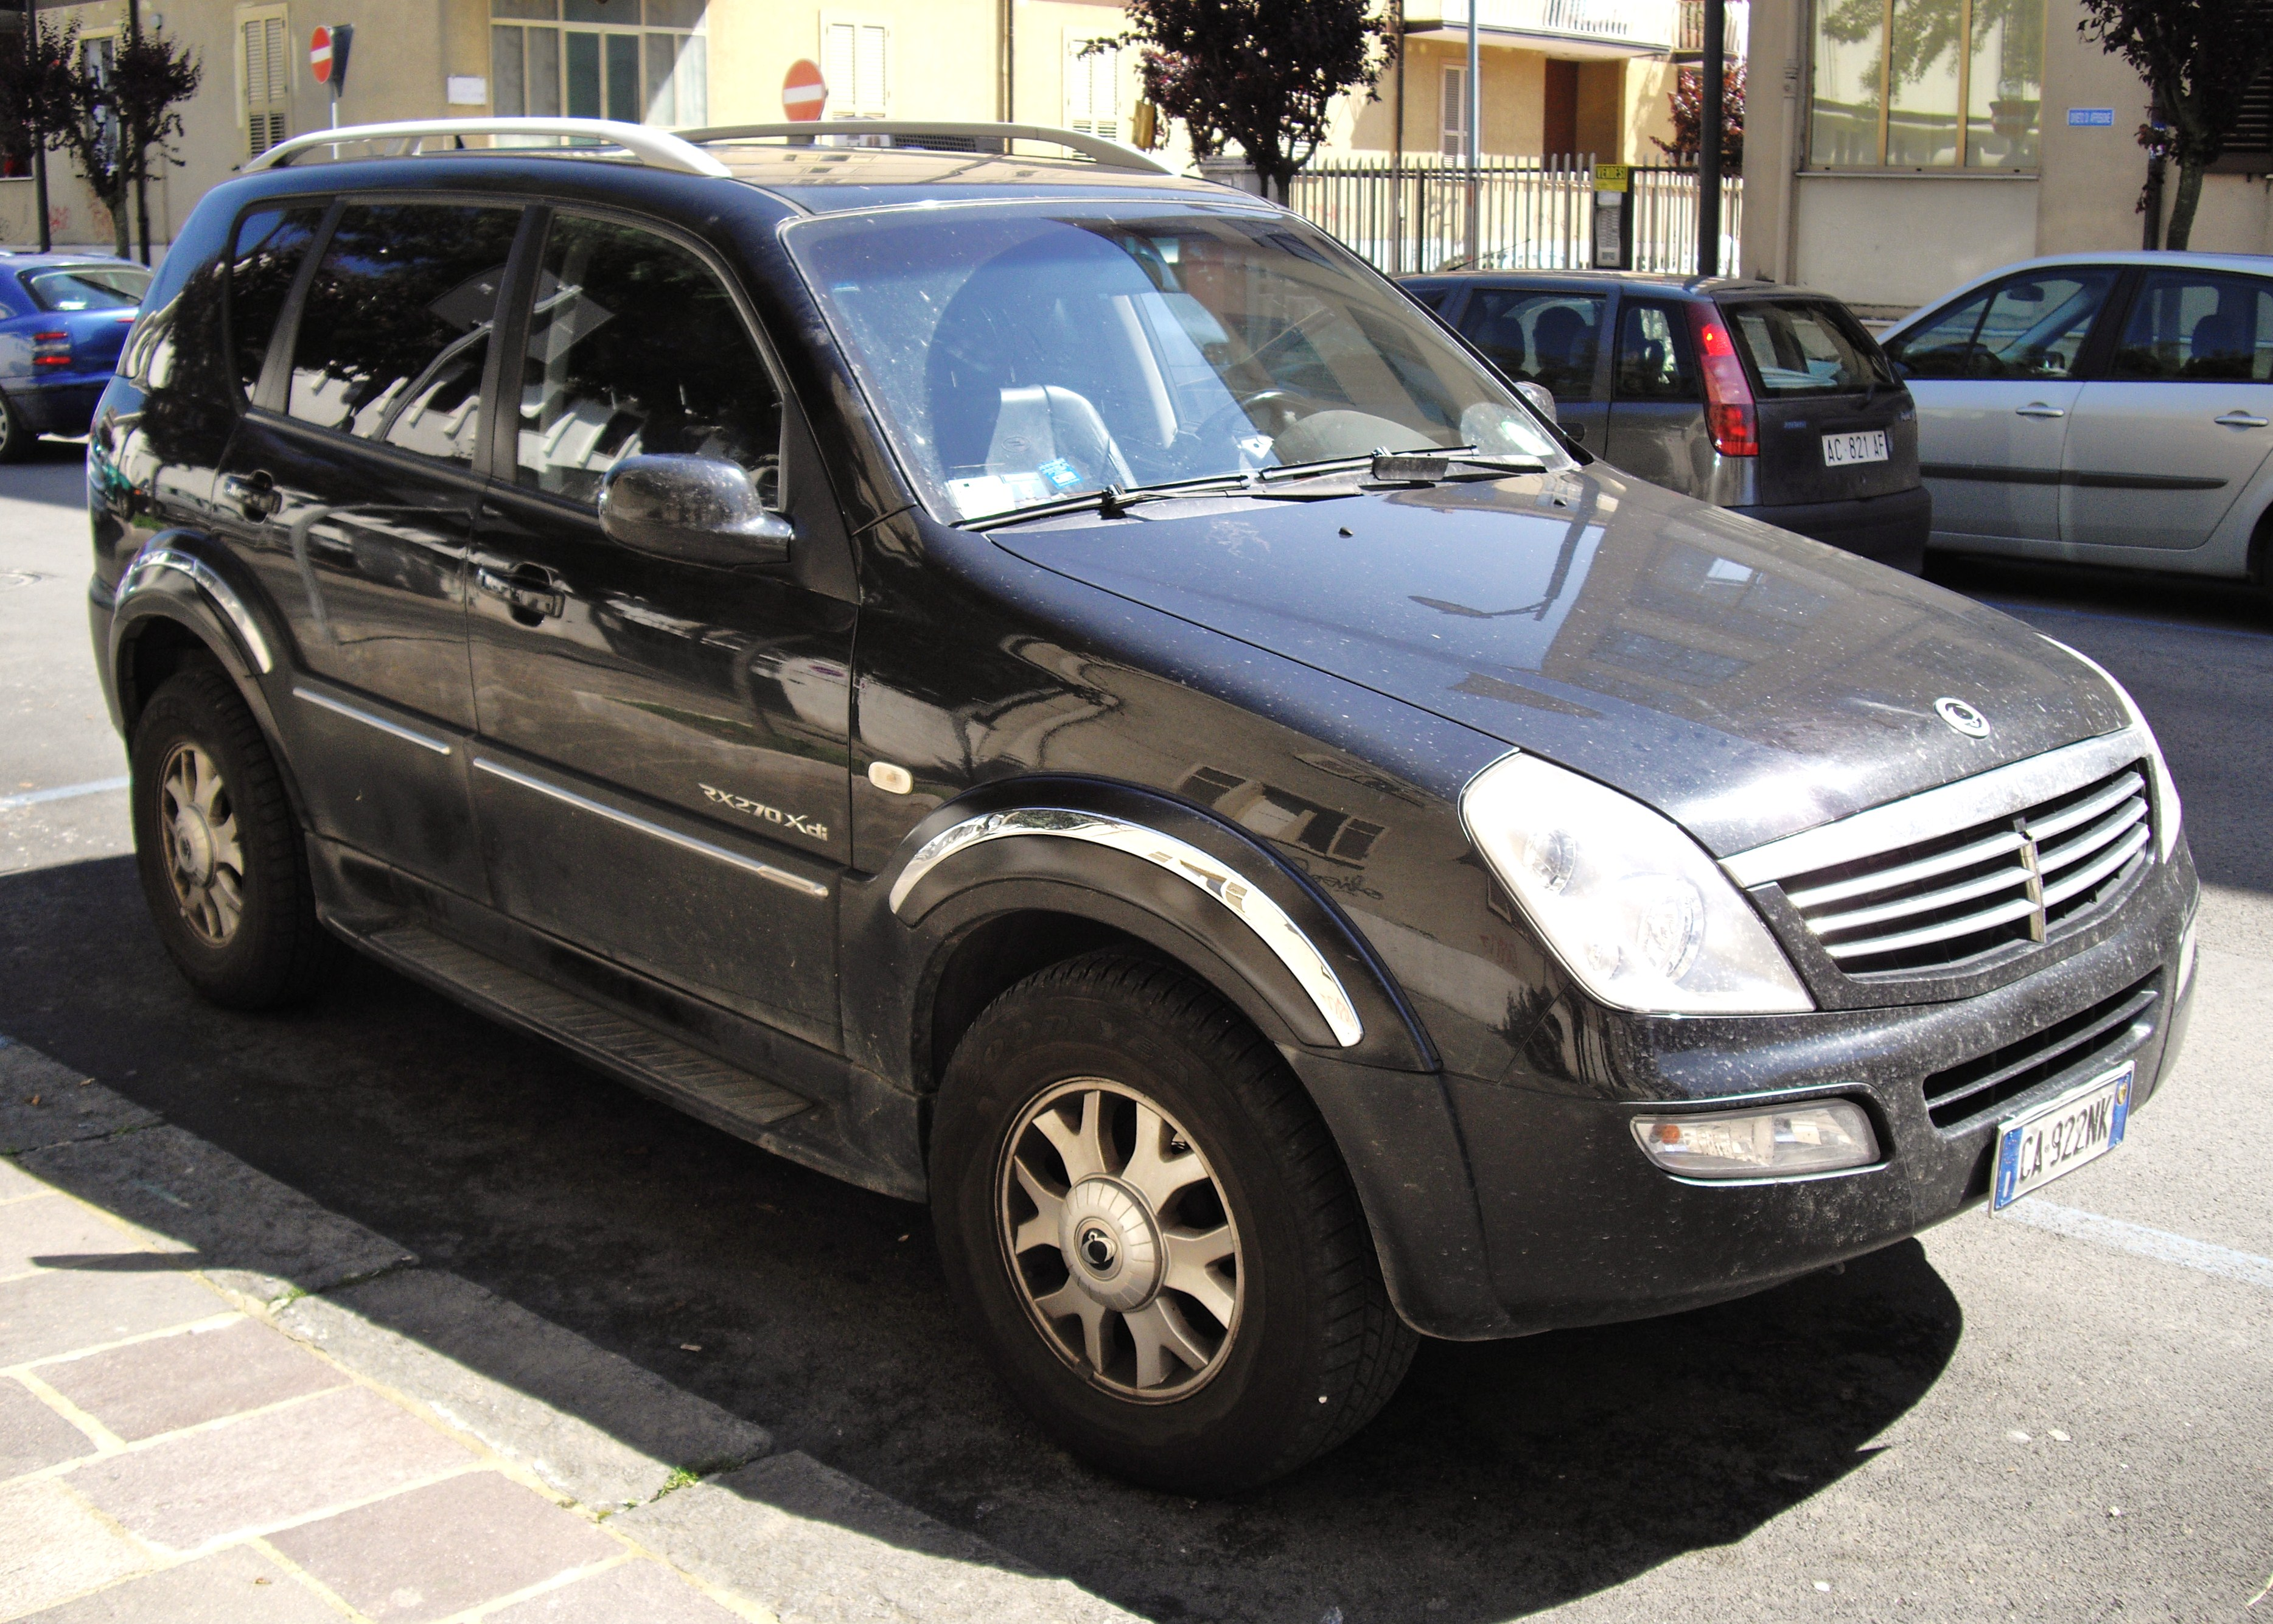 ssangyong rexton i 2005 images